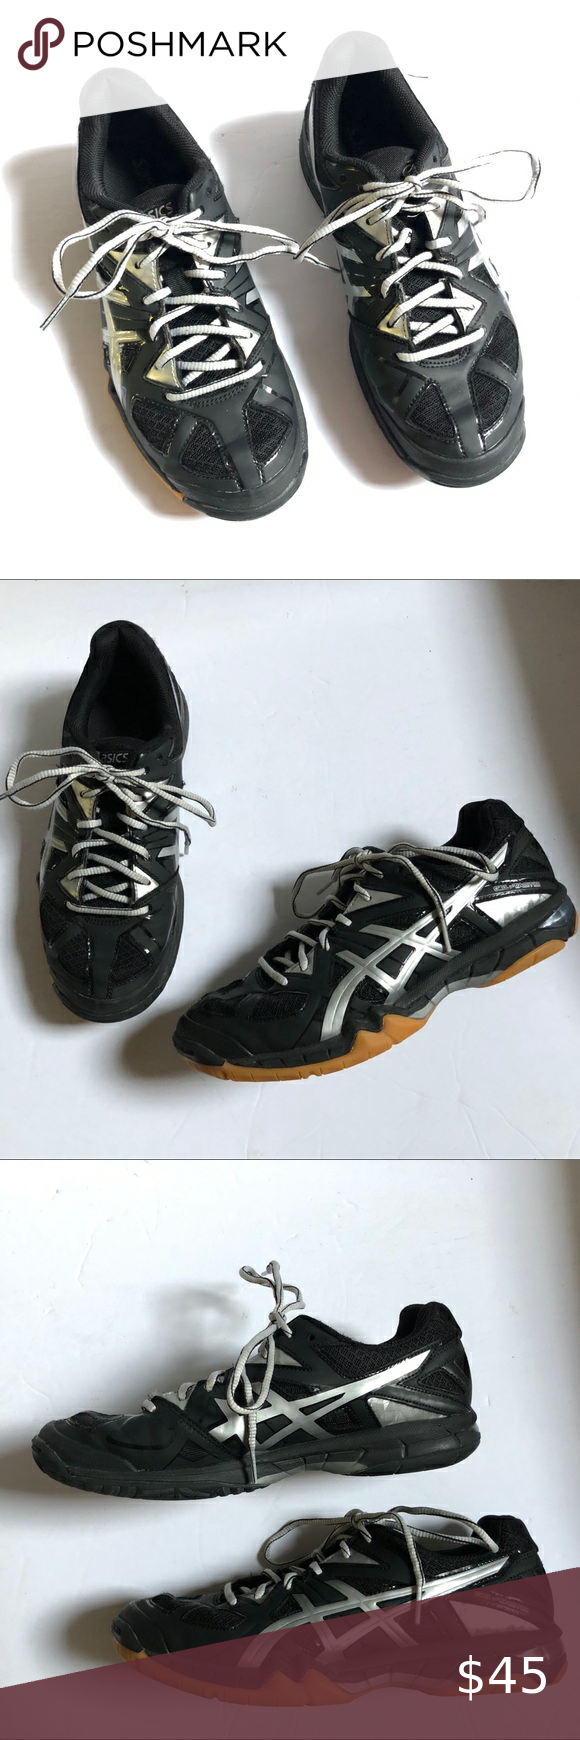 Asics Volleyball Shoes Women S Size 7 5 Black In 2020 Women Shoes Volleyball Shoes Asics Volleyball Shoes